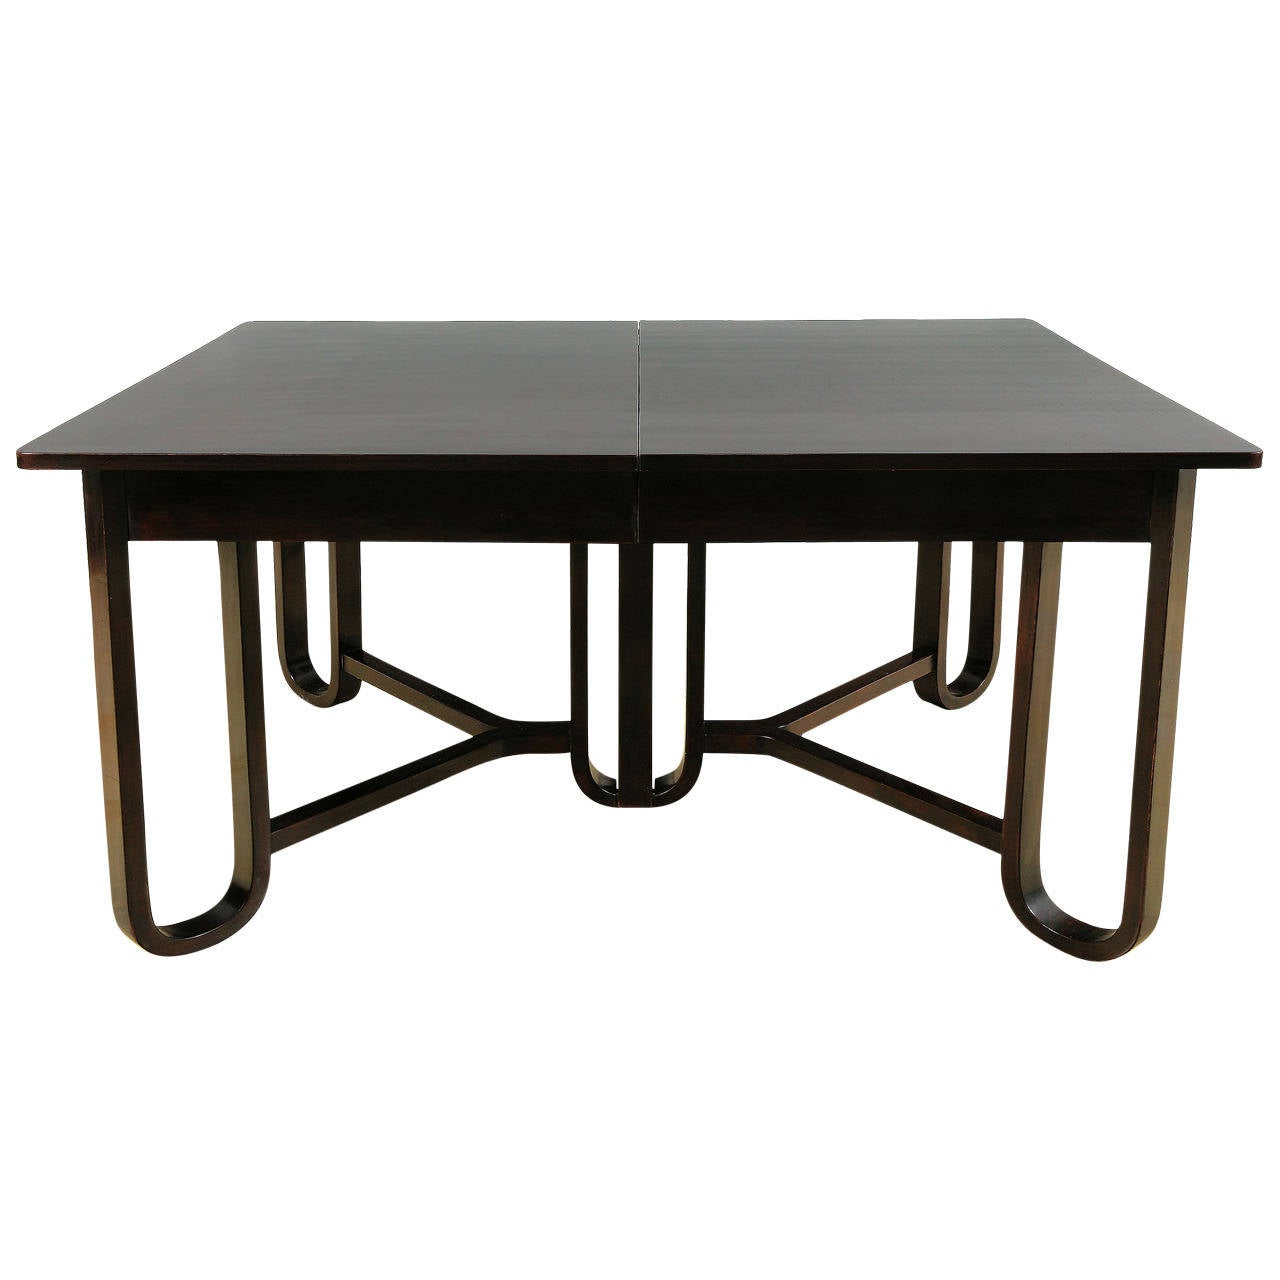 Extendable dining table by gebrueder thonet circa 1915 at for Table thonet